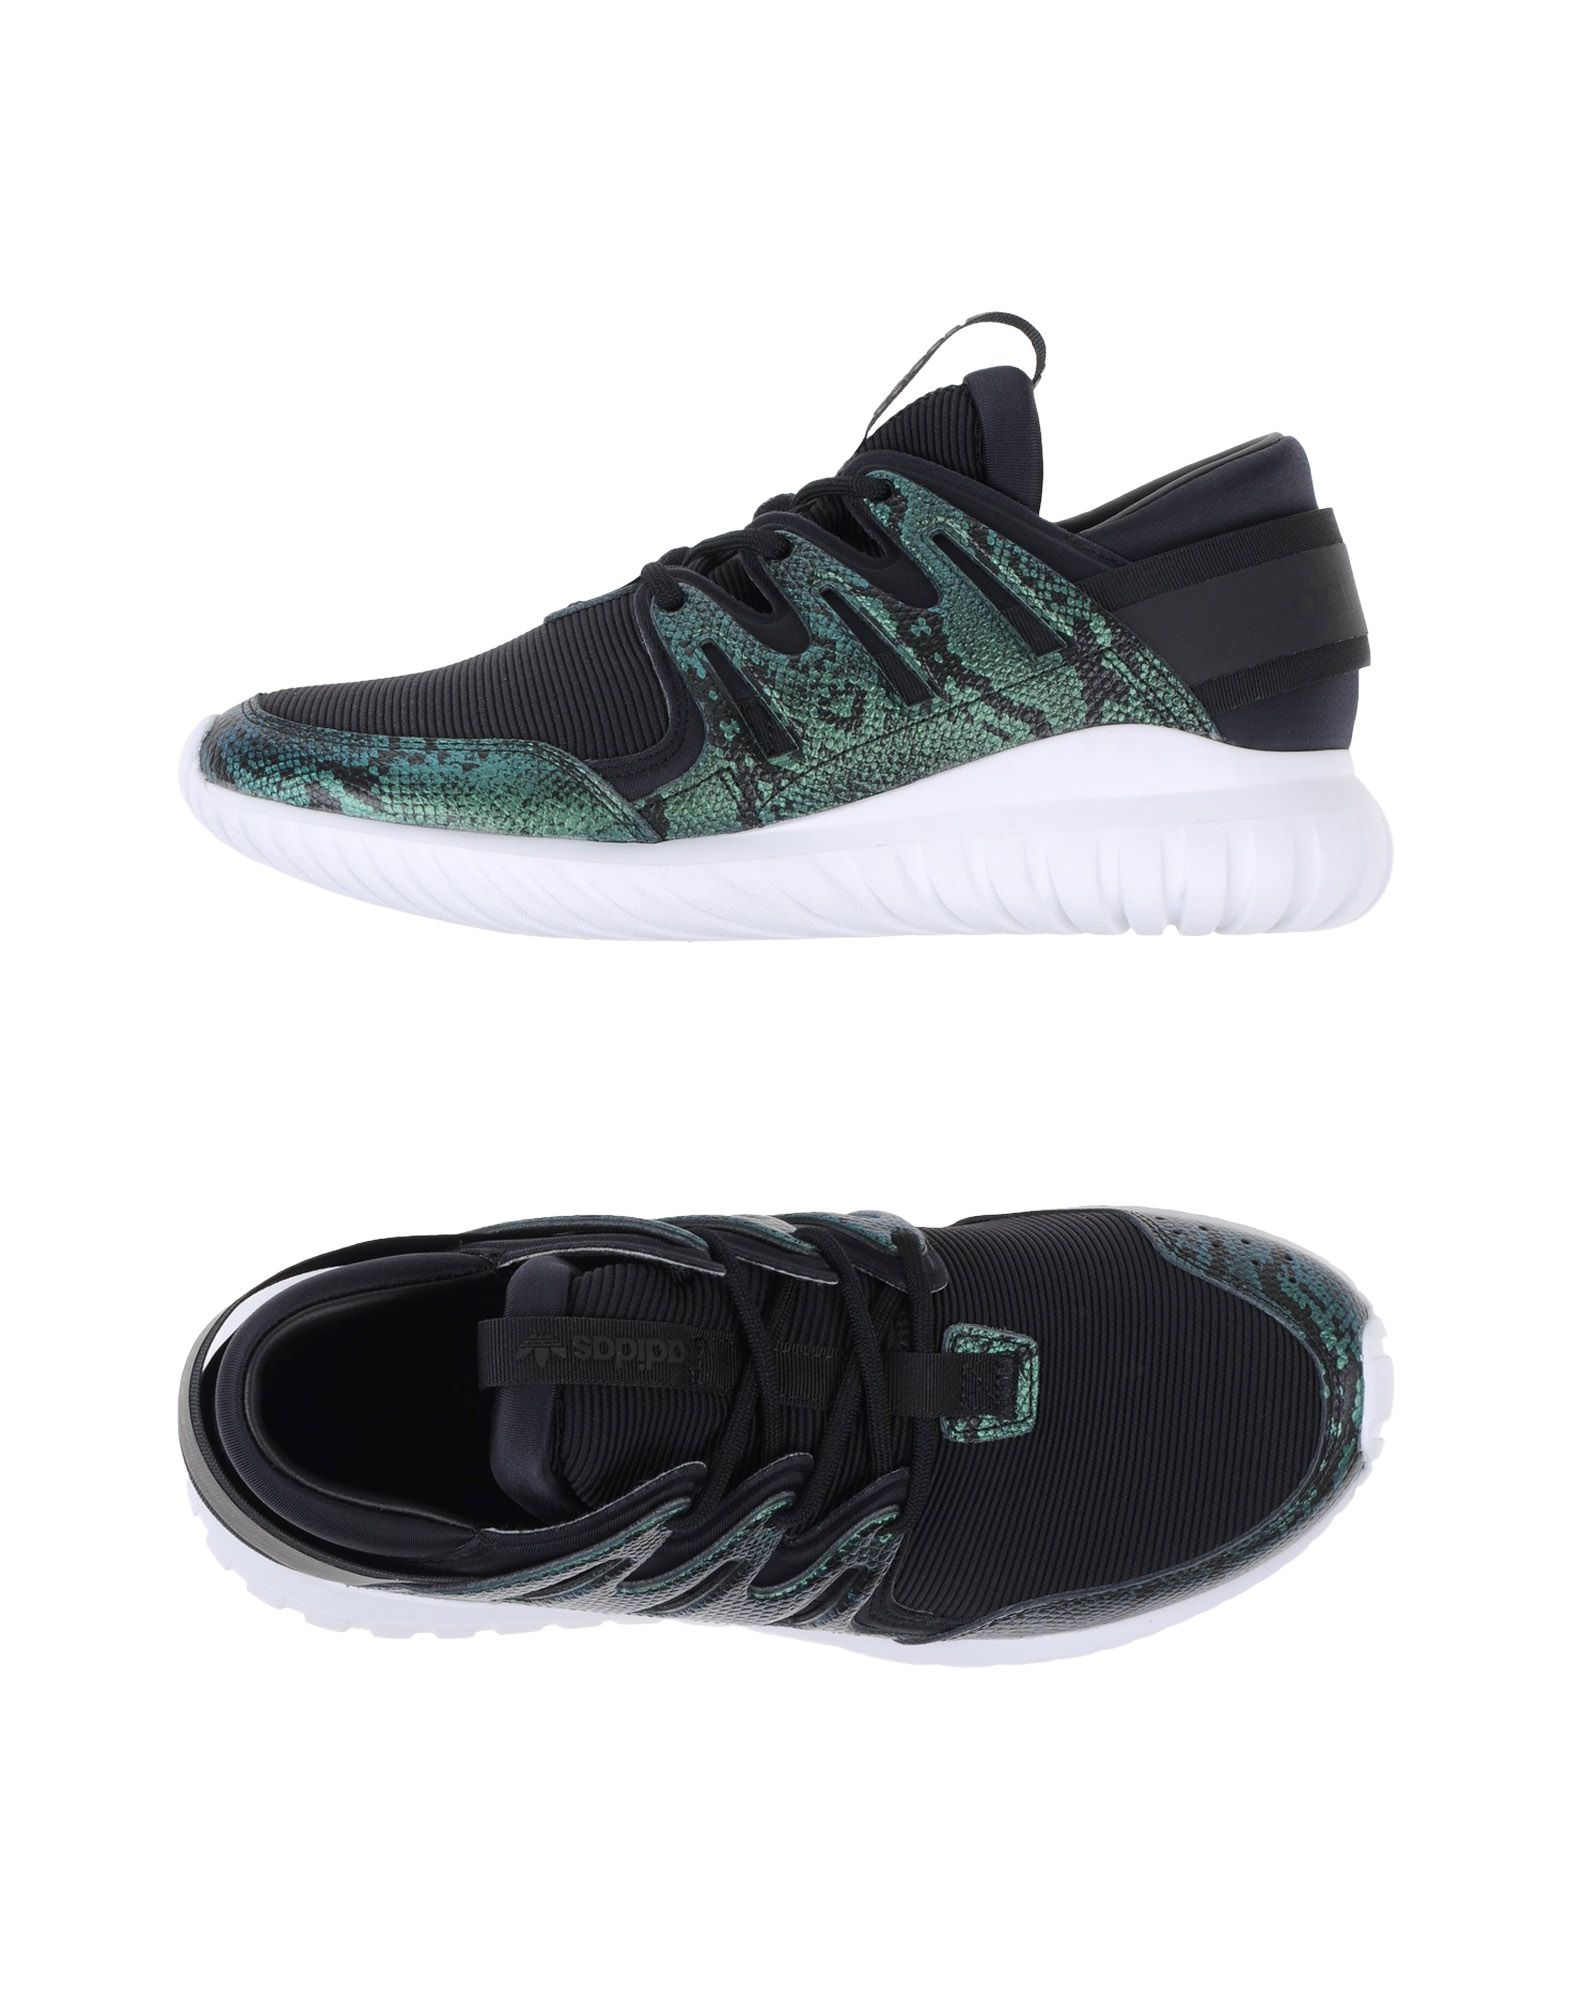 Sneakers Adidas Originals Tubular Nova - Uomo - Acquista online su